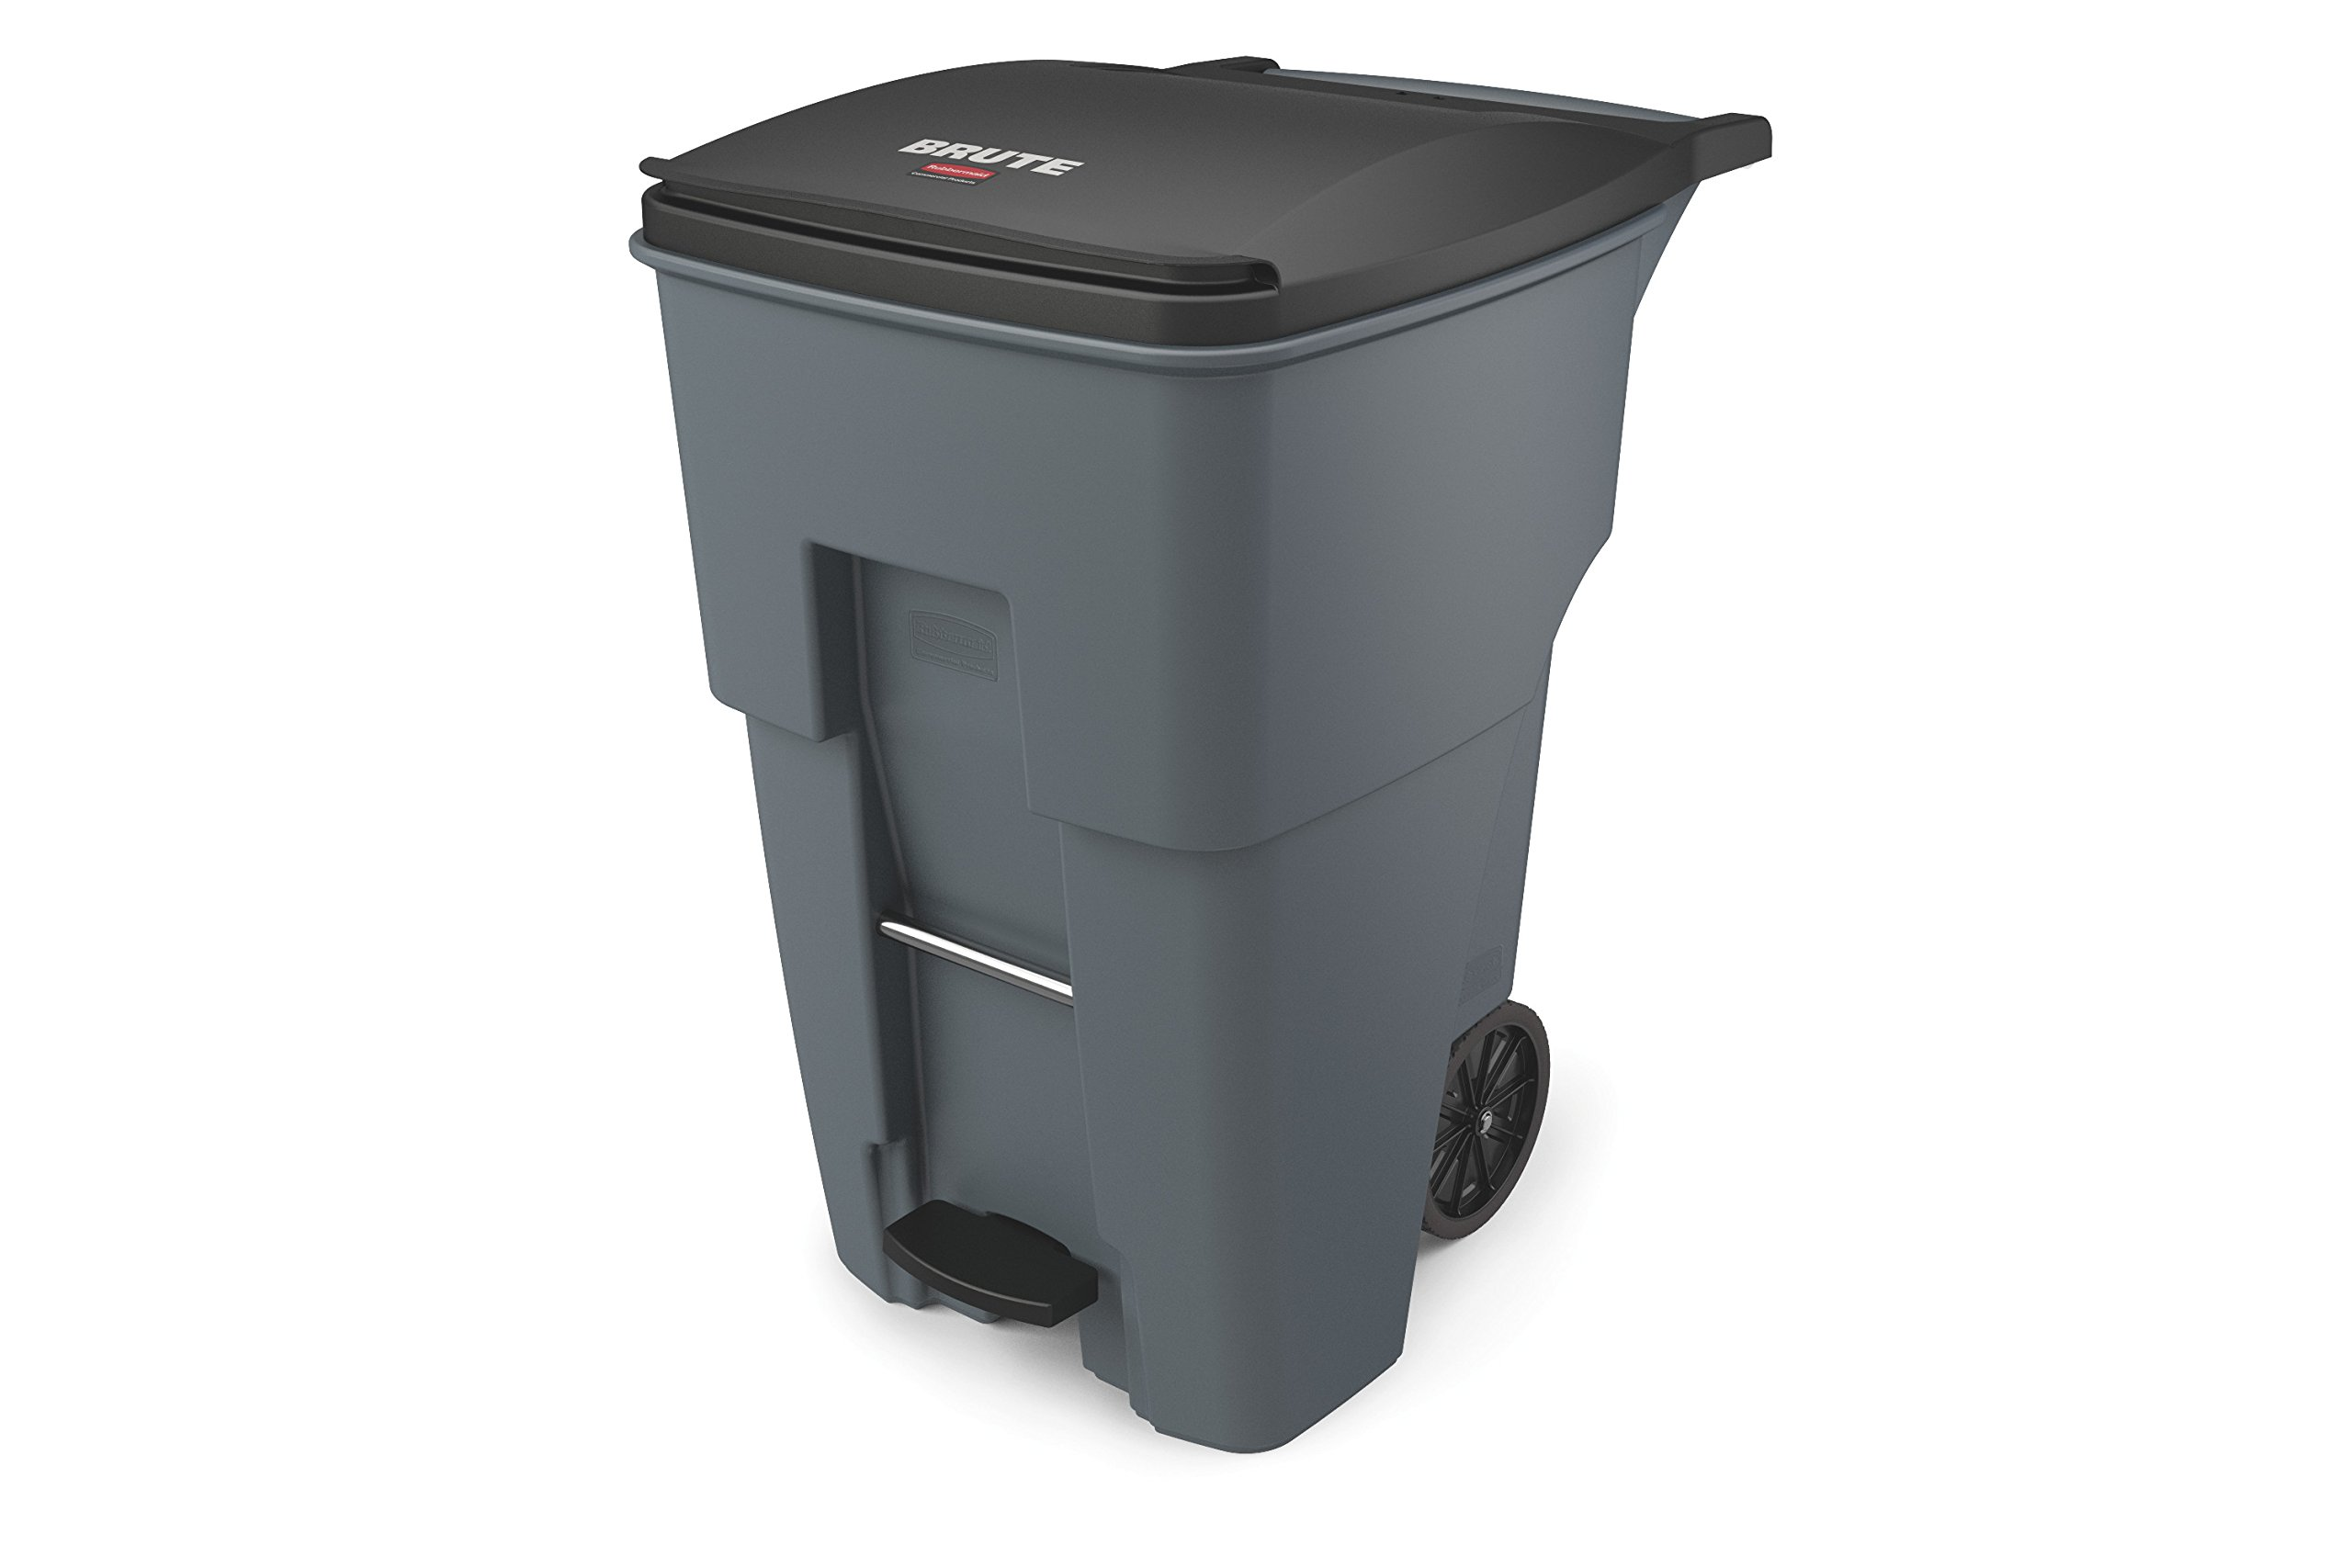 Rubbermaid Commercial 1971991 Brute Step-On Rollout Trash Can, 95 gal/360 L, 46.020'' Height, 28.600'' Width, Gray